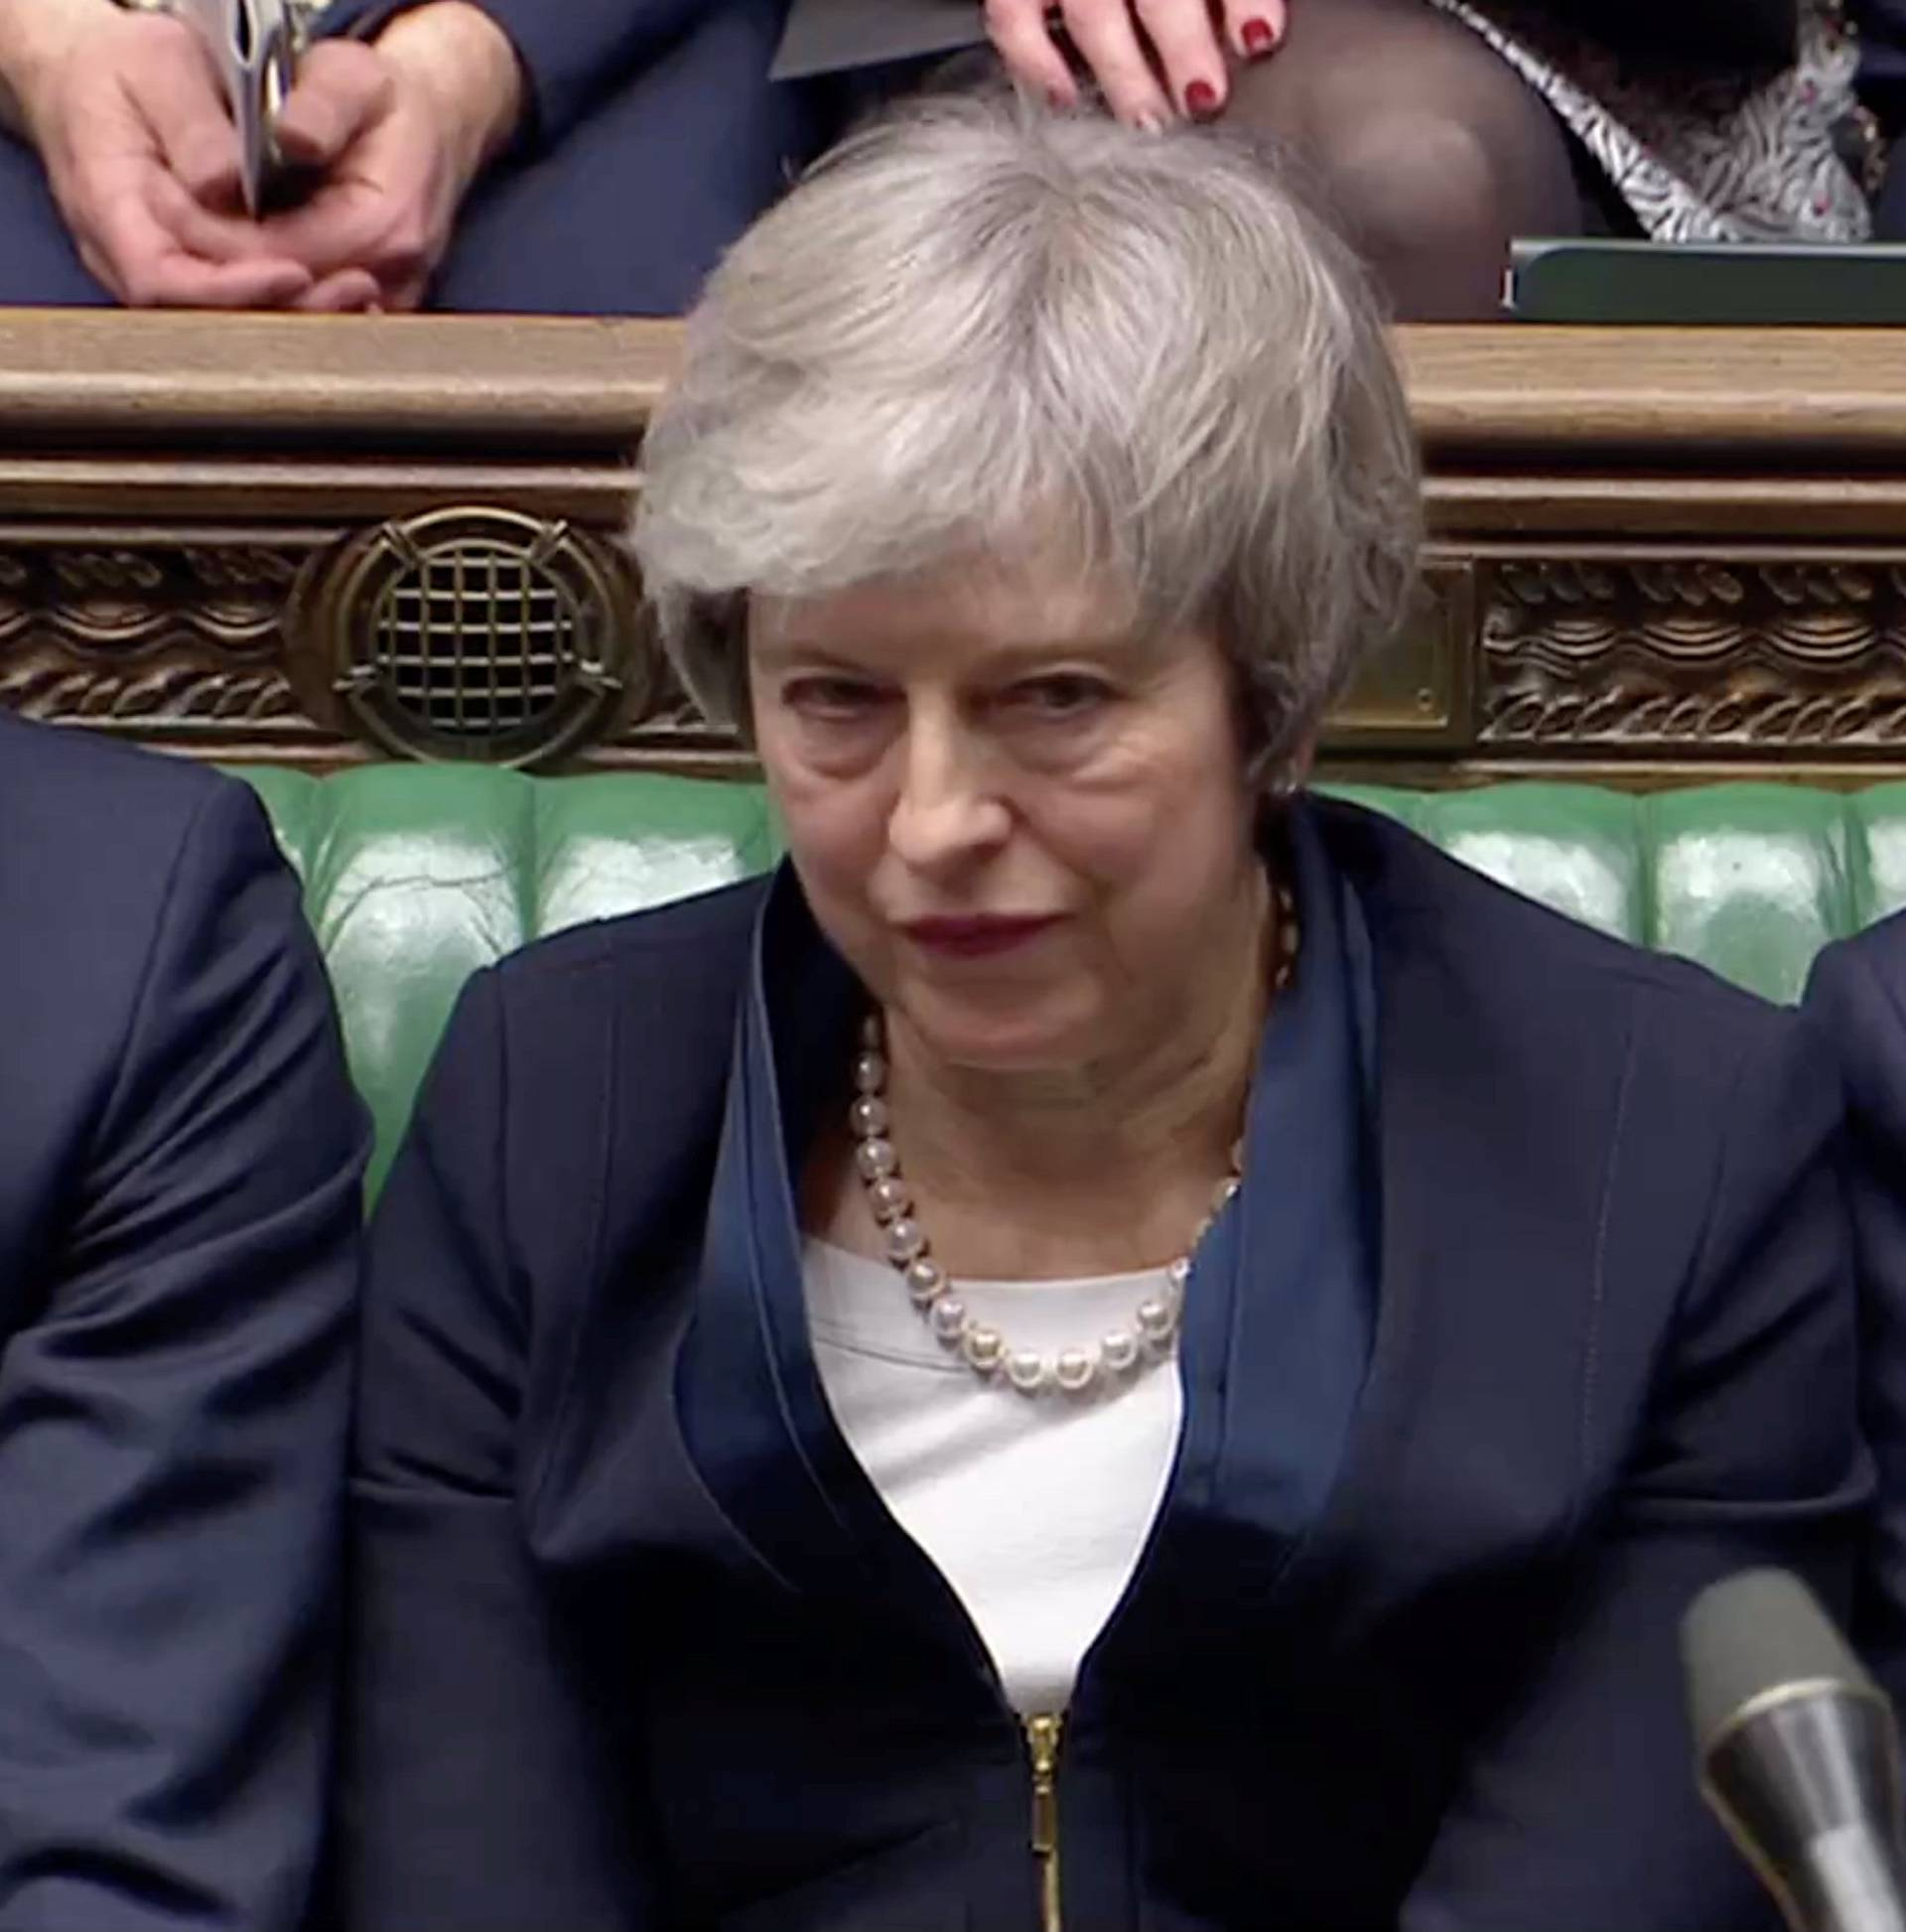 Prime Minister Theresa May sits down in Parliament after the vote on May's Brexit deal, in London